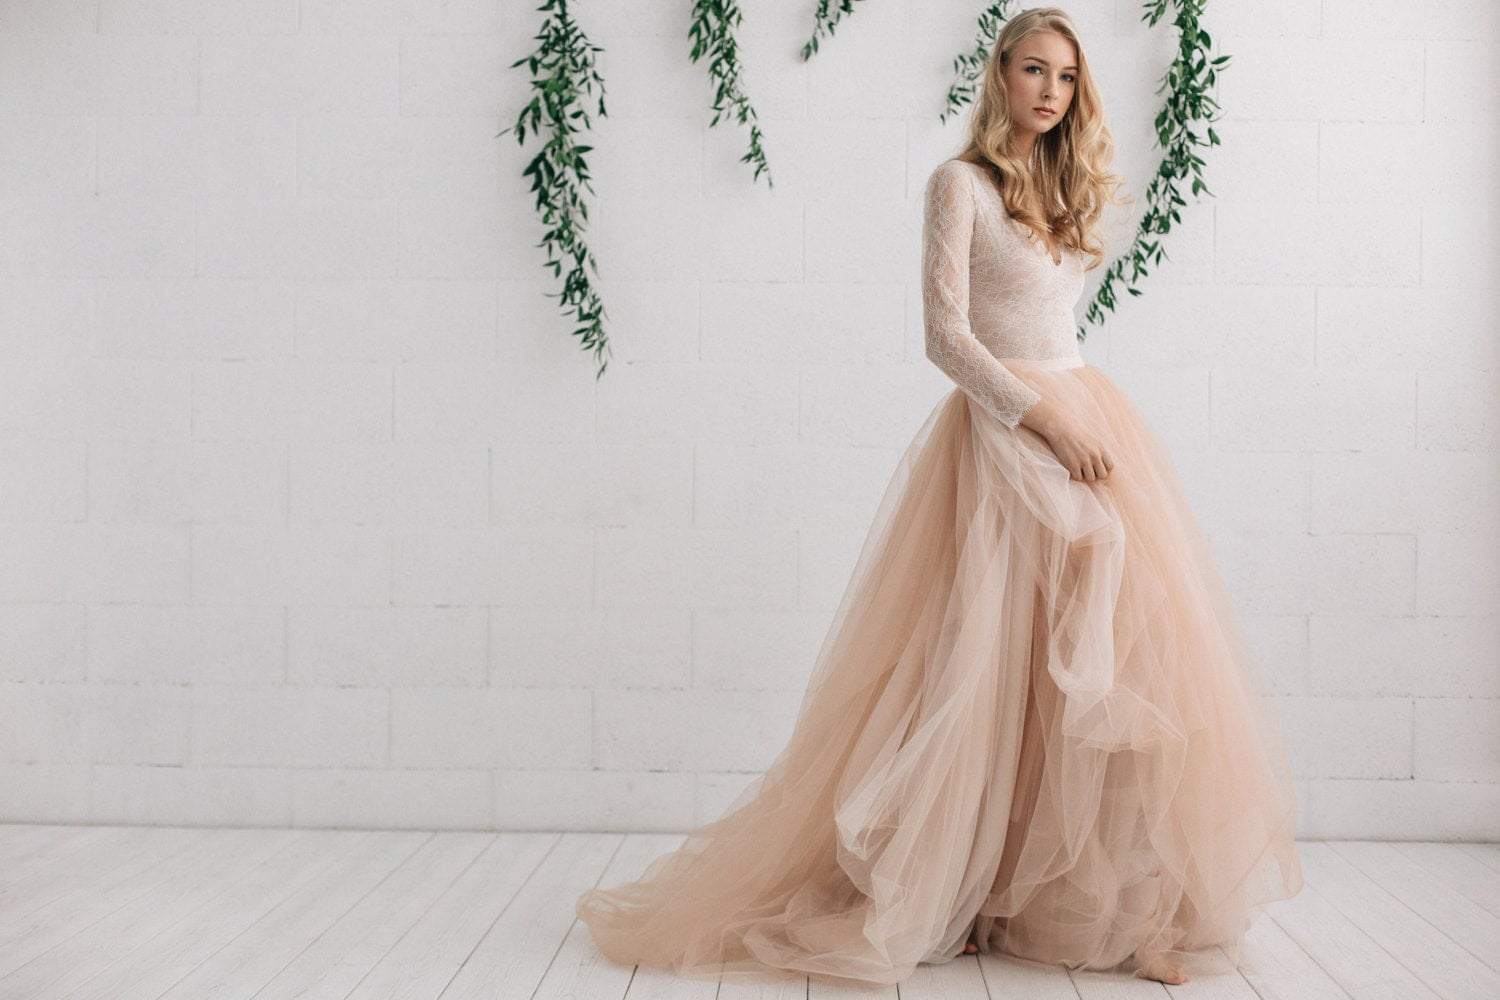 boho wedding dress boho wedding dress Wedding Dress Nude Champagne Peach Ivory Bridal Dress Two Piece Dress Long Sleeves Dress Melanie